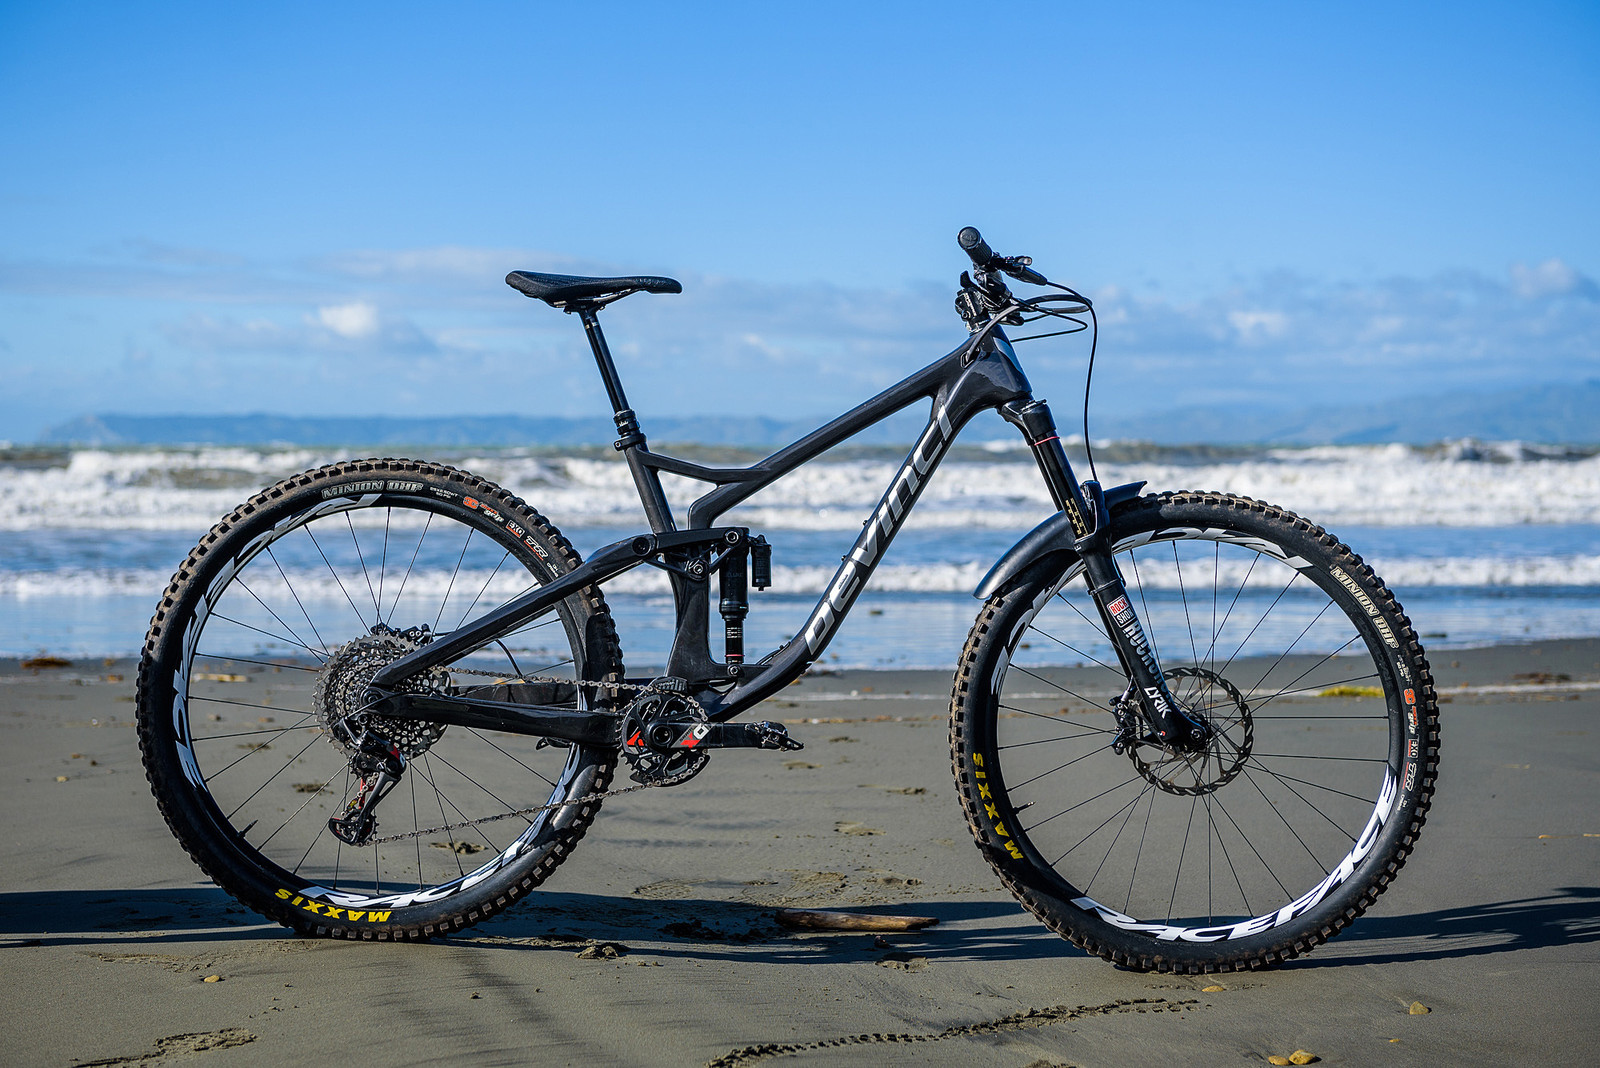 Keegan Wright's Prototype Devinci 29er Enduro Machine - Keegan Wright's Prototype Devinci 29er Enduro Machine - Mountain Biking Pictures - Vital MTB